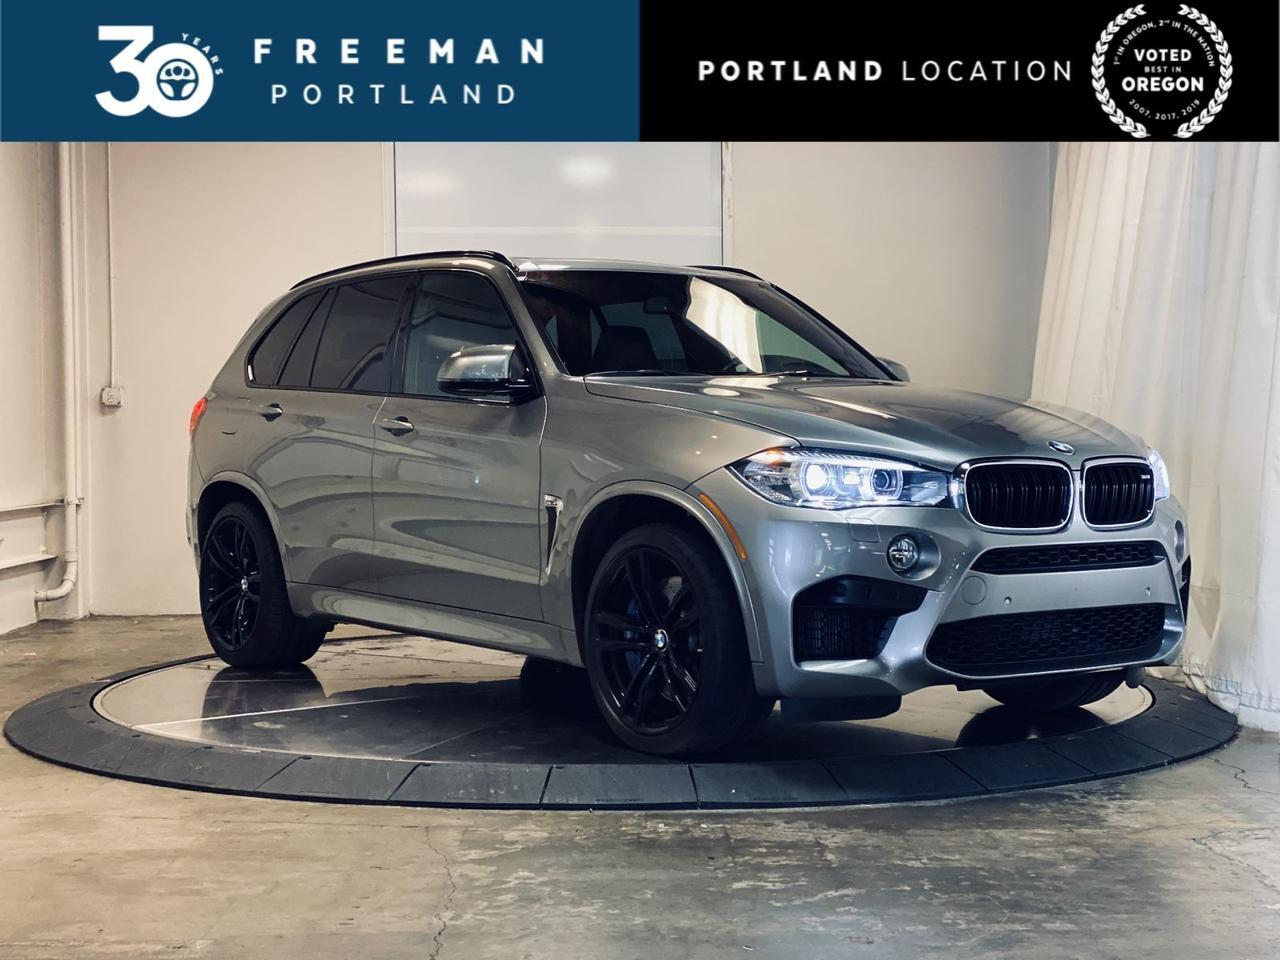 2017 BMW X5 M V8 Twin Turbo 567Hp Carbon Fiber Trim Portland OR